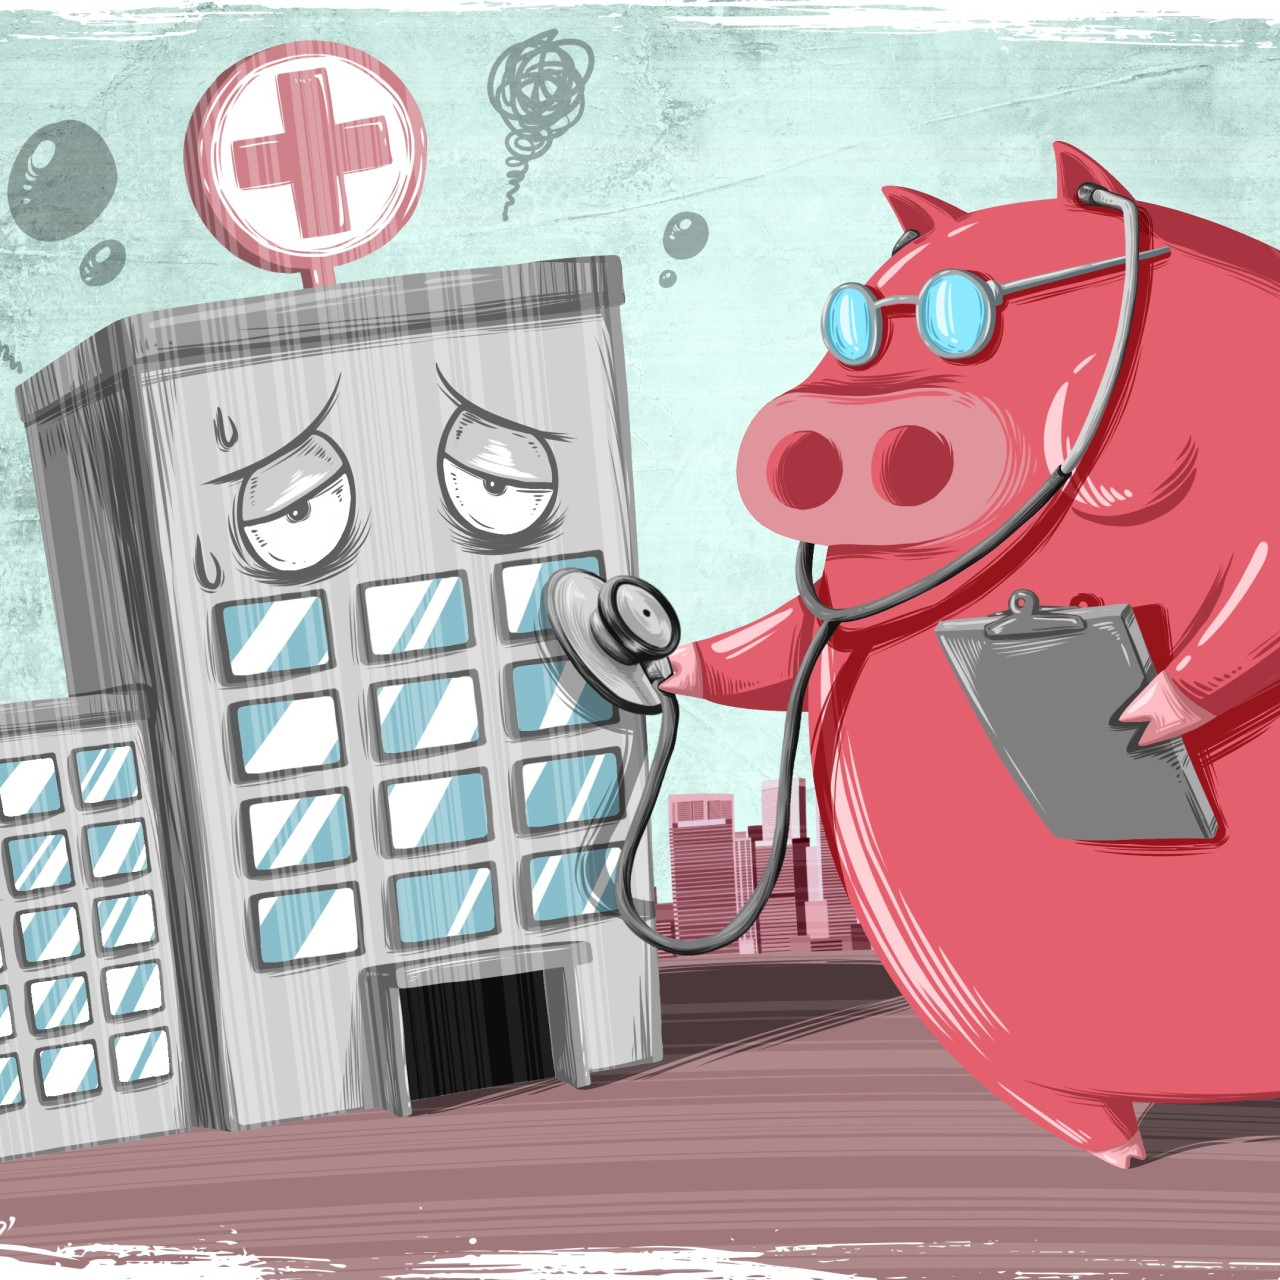 Hong Kong's health care system is teetering on the brink  What's